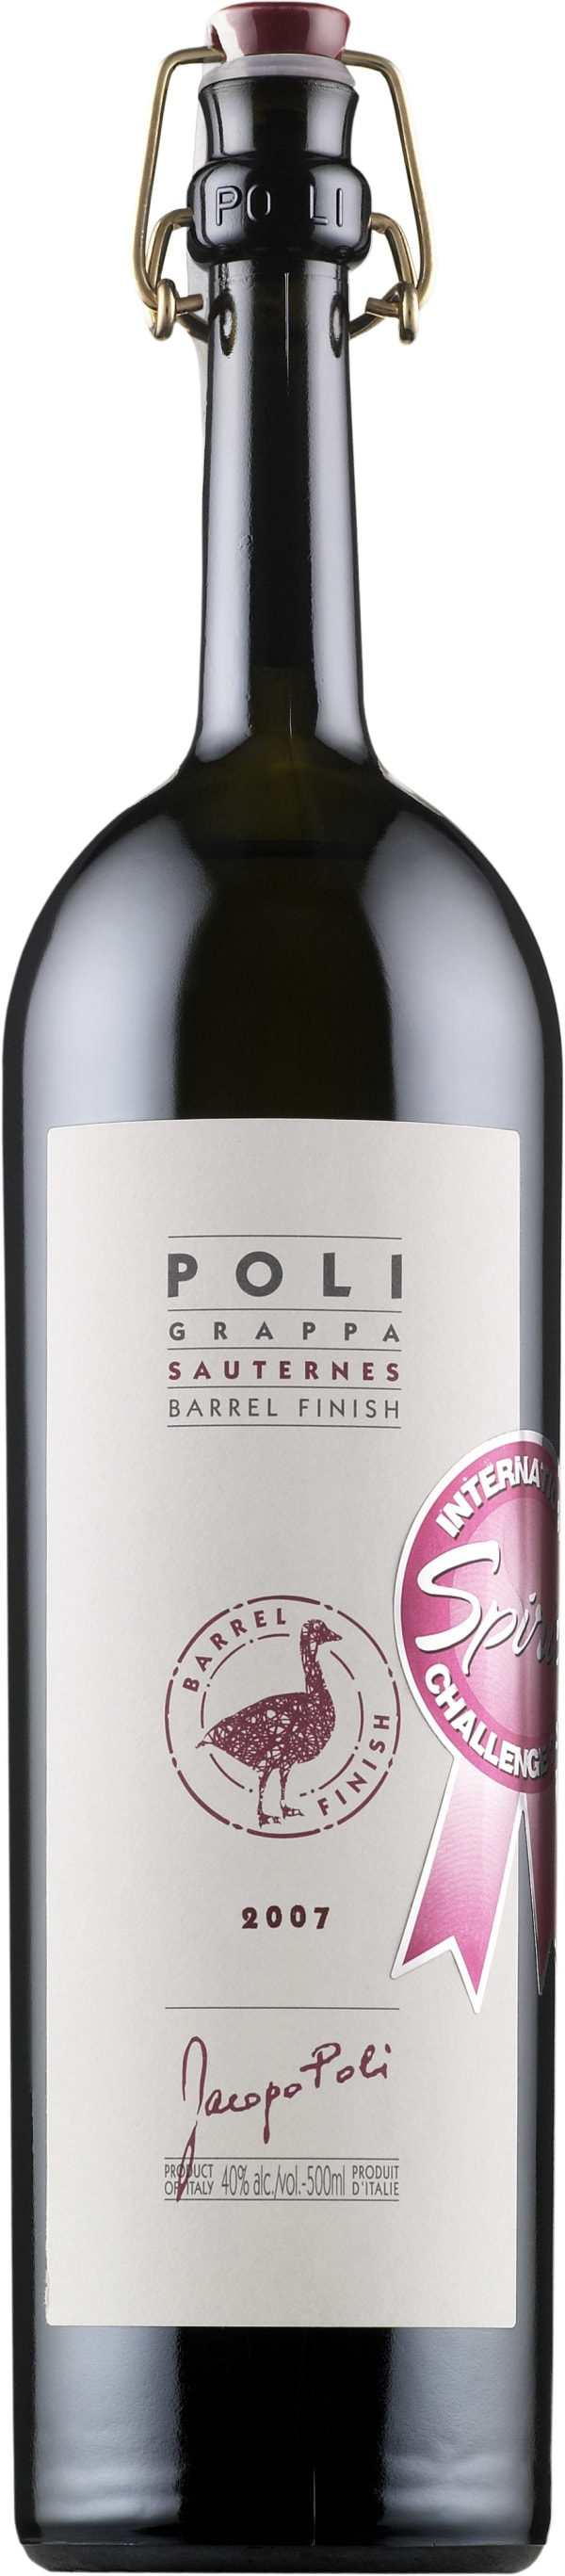 Poli Grappa Sauternes Barrel Finish